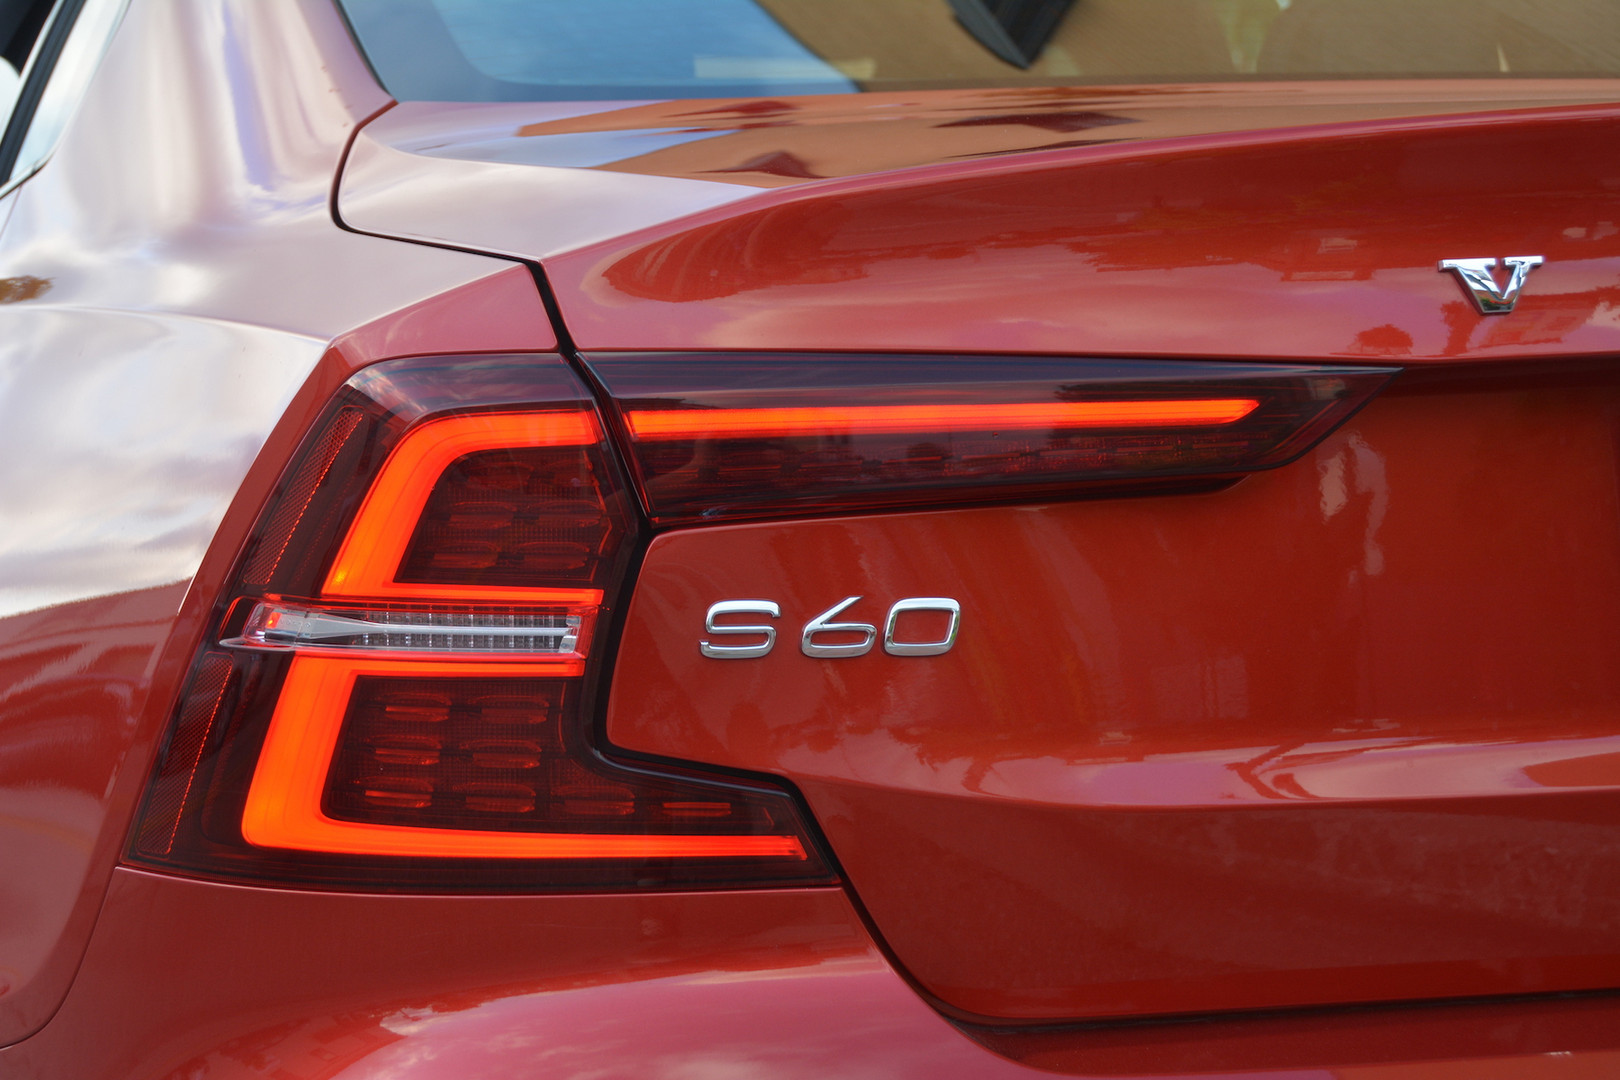 2019 Volvo S60 Badge